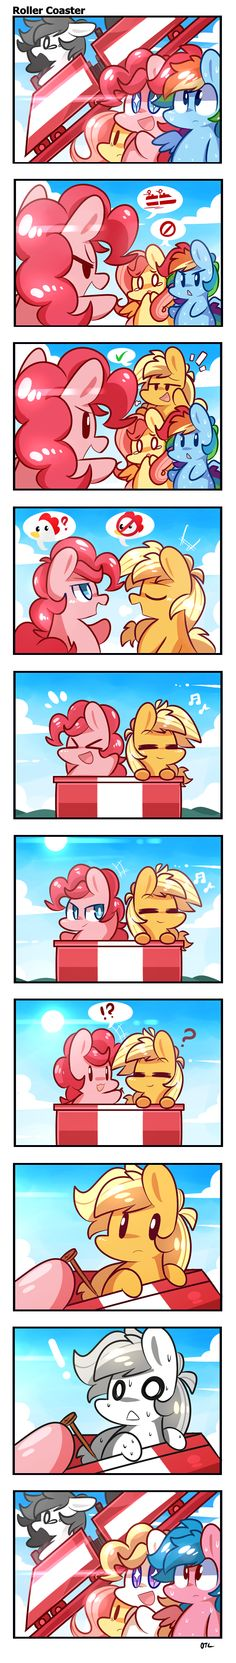 Roller Coaster by ILifeloser.deviantart.com on @deviantART pinkie: ROLLER COASTER, you coming? fluttershy: n-no... dashie: i um, i should stay with flutters...yeah. AJ: i'll come. pinkie: not scared? AJ: nope. (on the roller coaster) pinkie: look at what i found! AJ: O_o wha-end 'u'